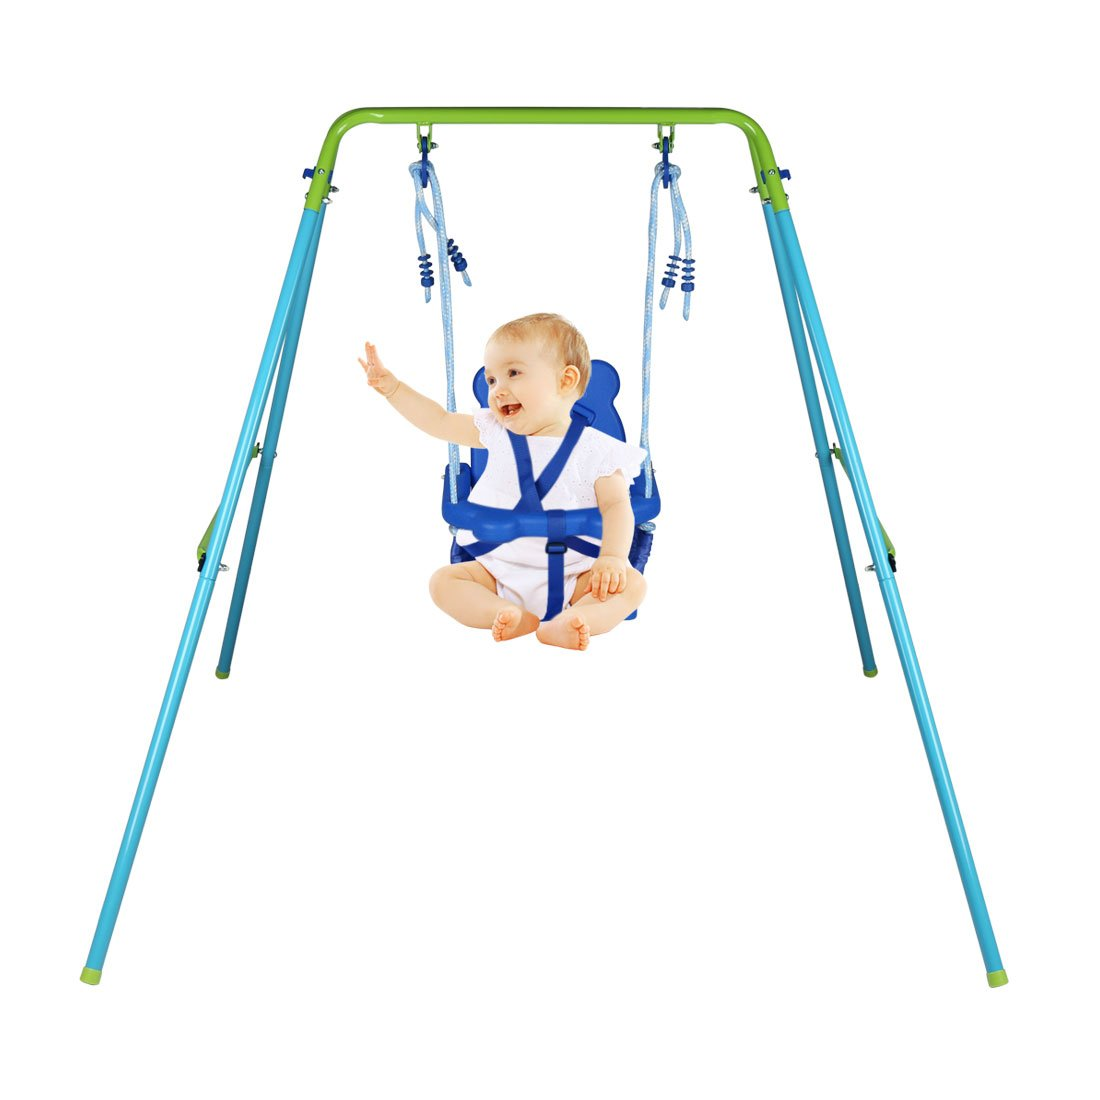 HLC Folding Toddler Blue Secure Swing with safety seat for baby/chirldren's Gift by HLC